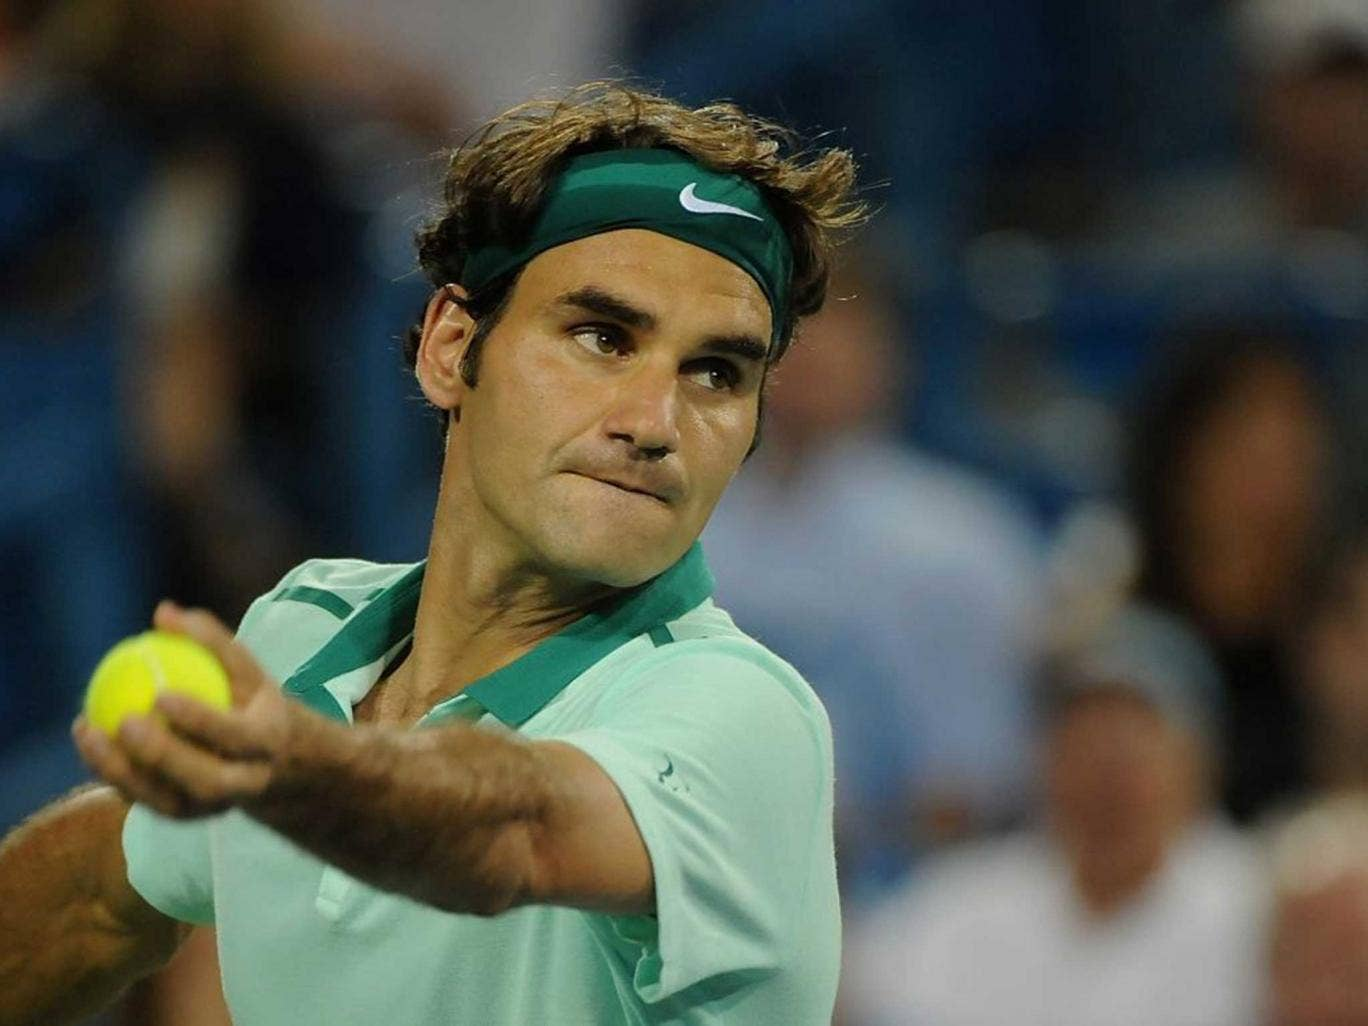 Despite celebrating his 33rd birthday recently, Federer looks to be in excellent shape